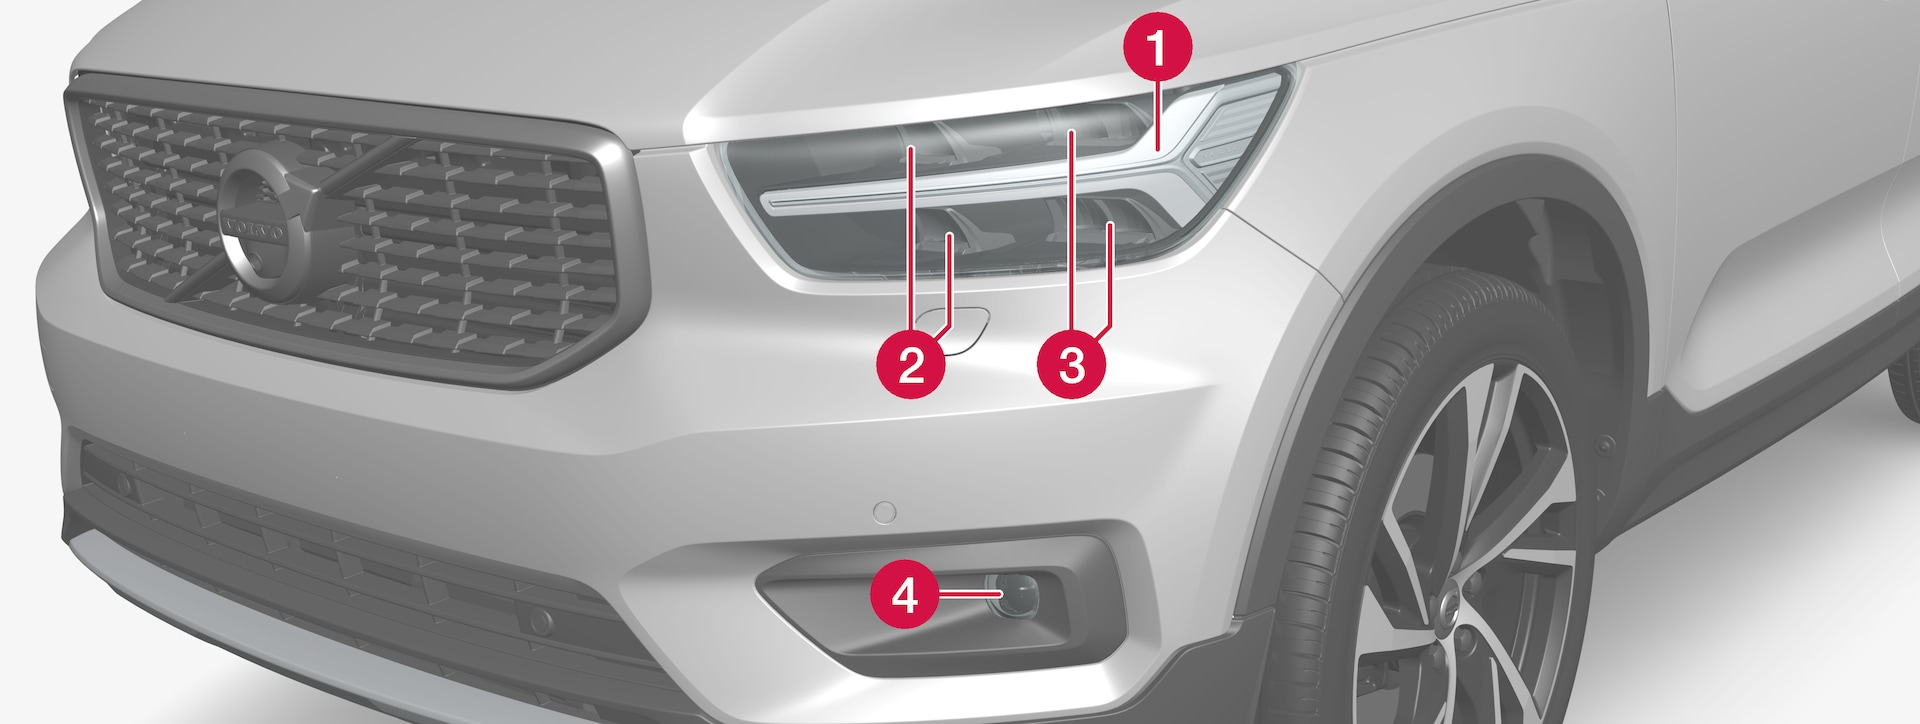 P6-1746-XC40-Front light positions